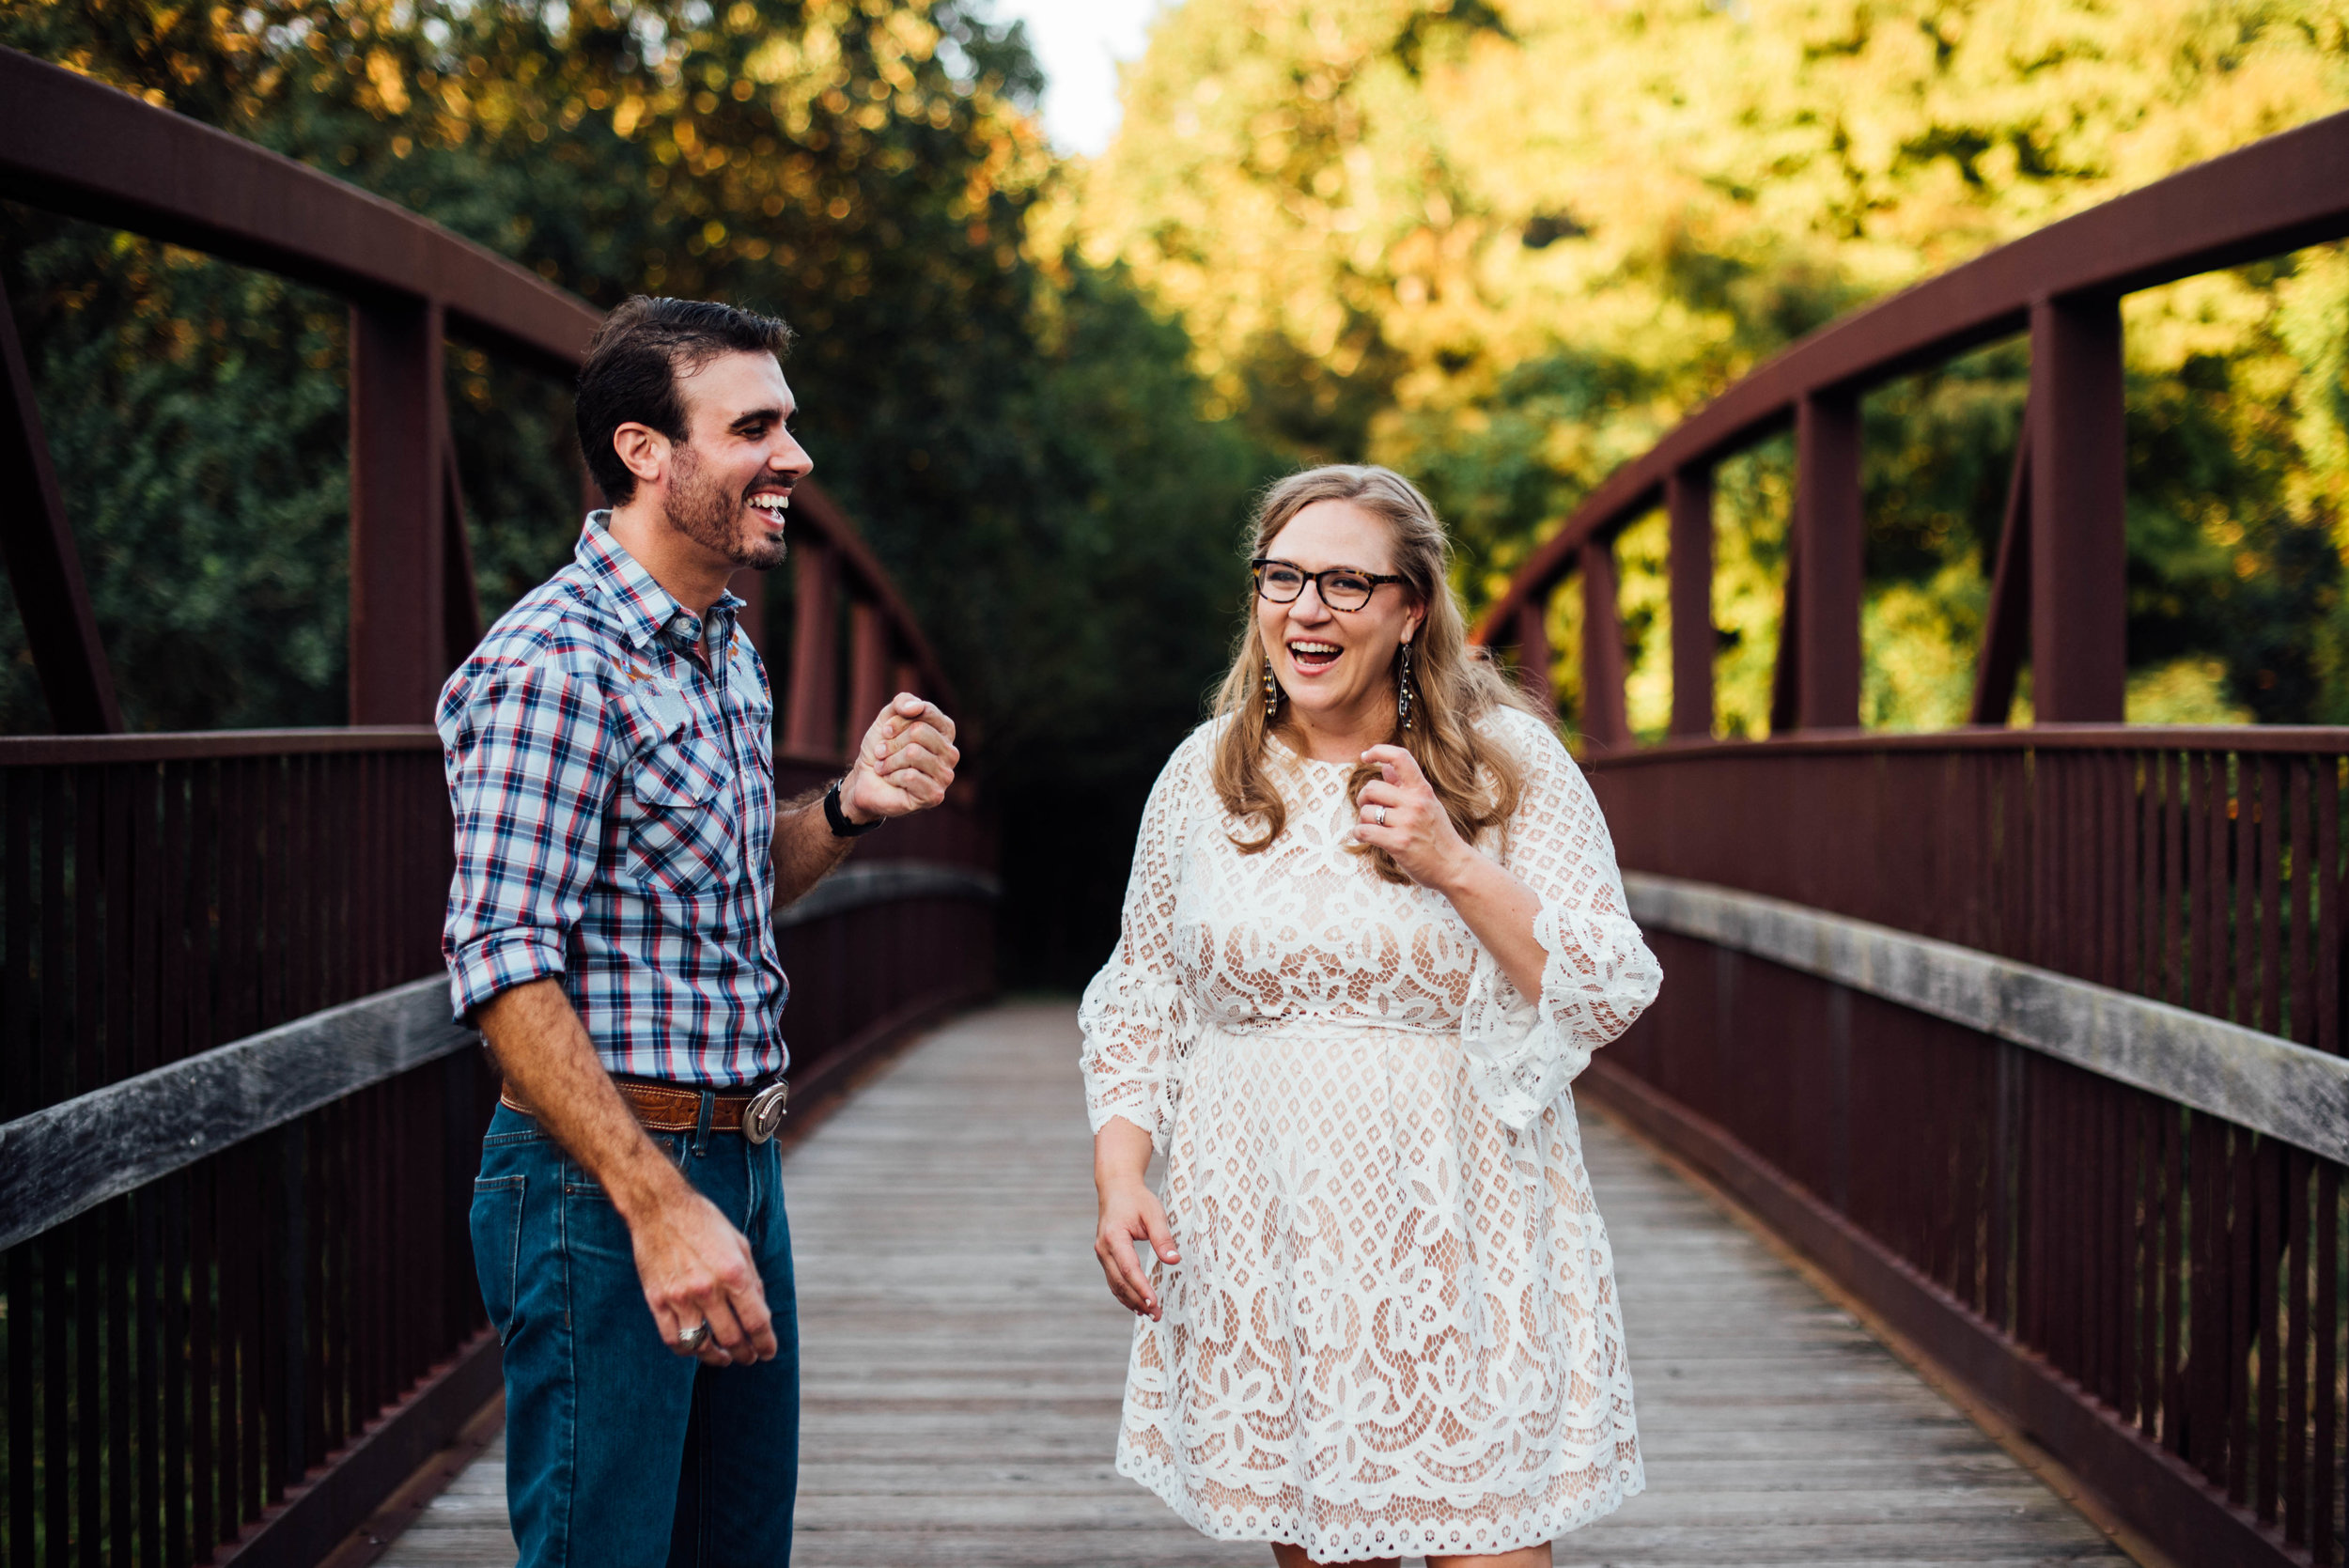 Jordan + Kent_French-Quarter-New-Orleans-City-Park-Engagement-Photos_Gabby Chapin_Print_0143.jpg